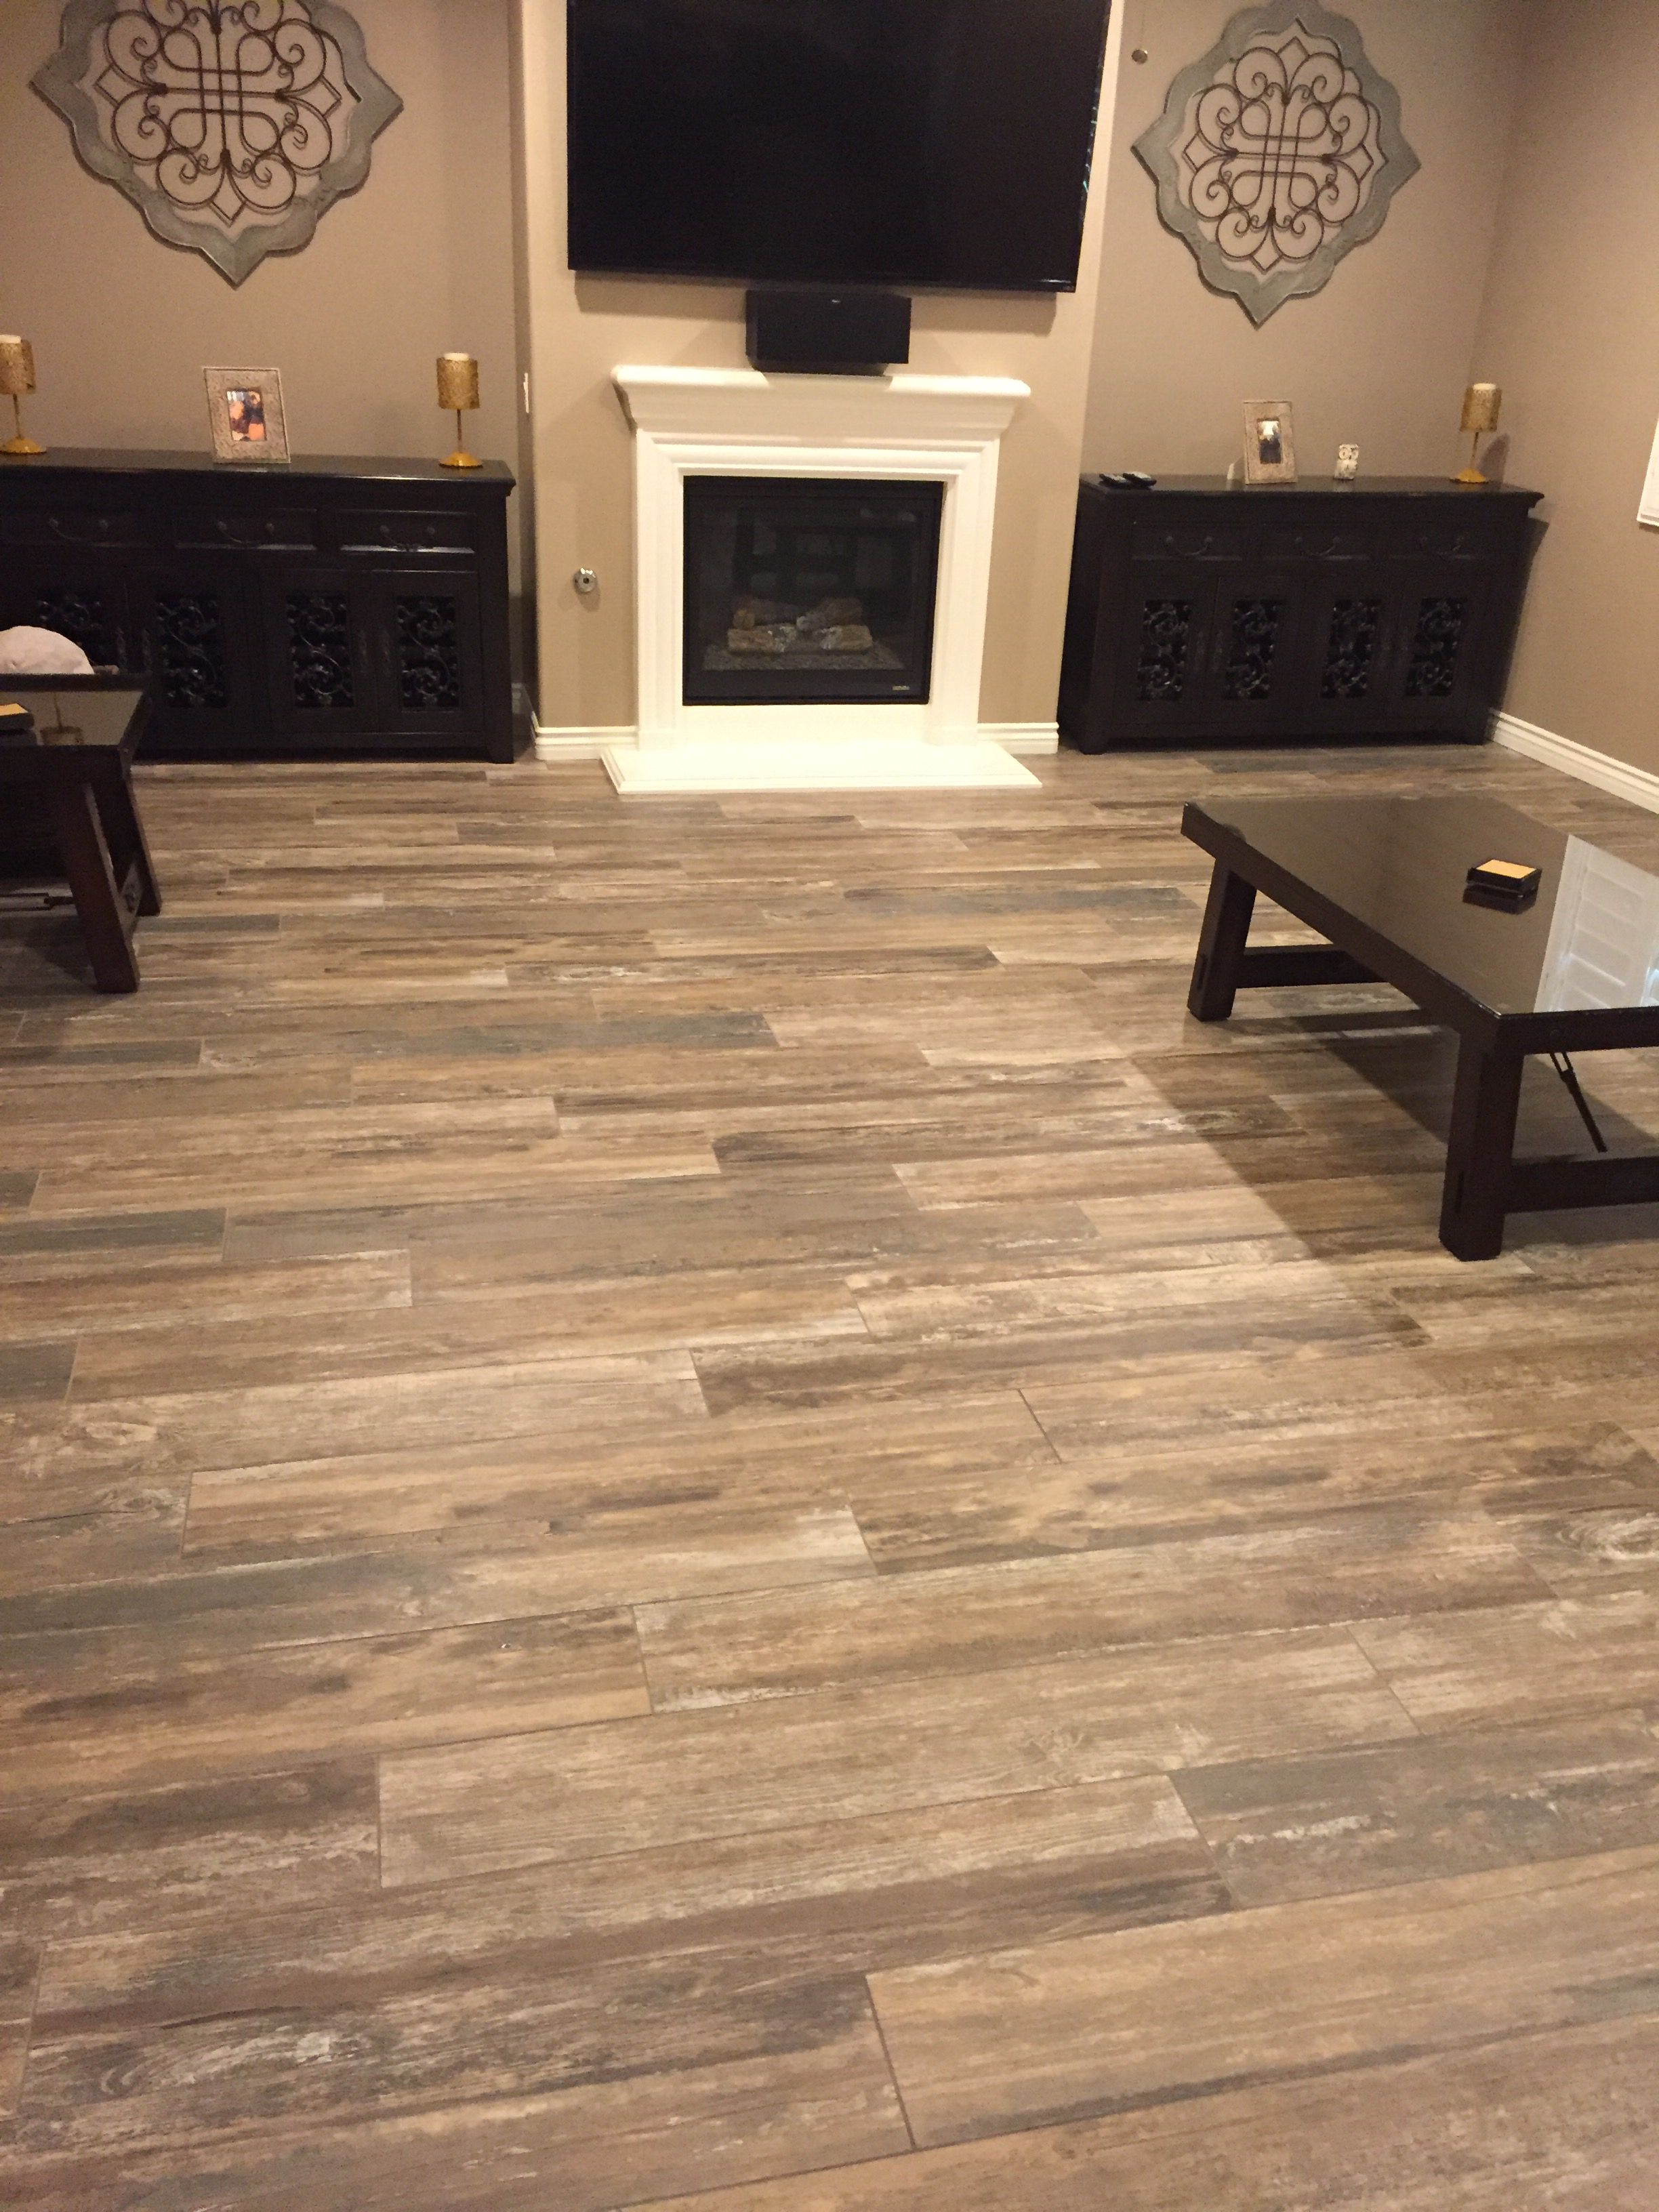 Fresh Ceramic Tile In Basement